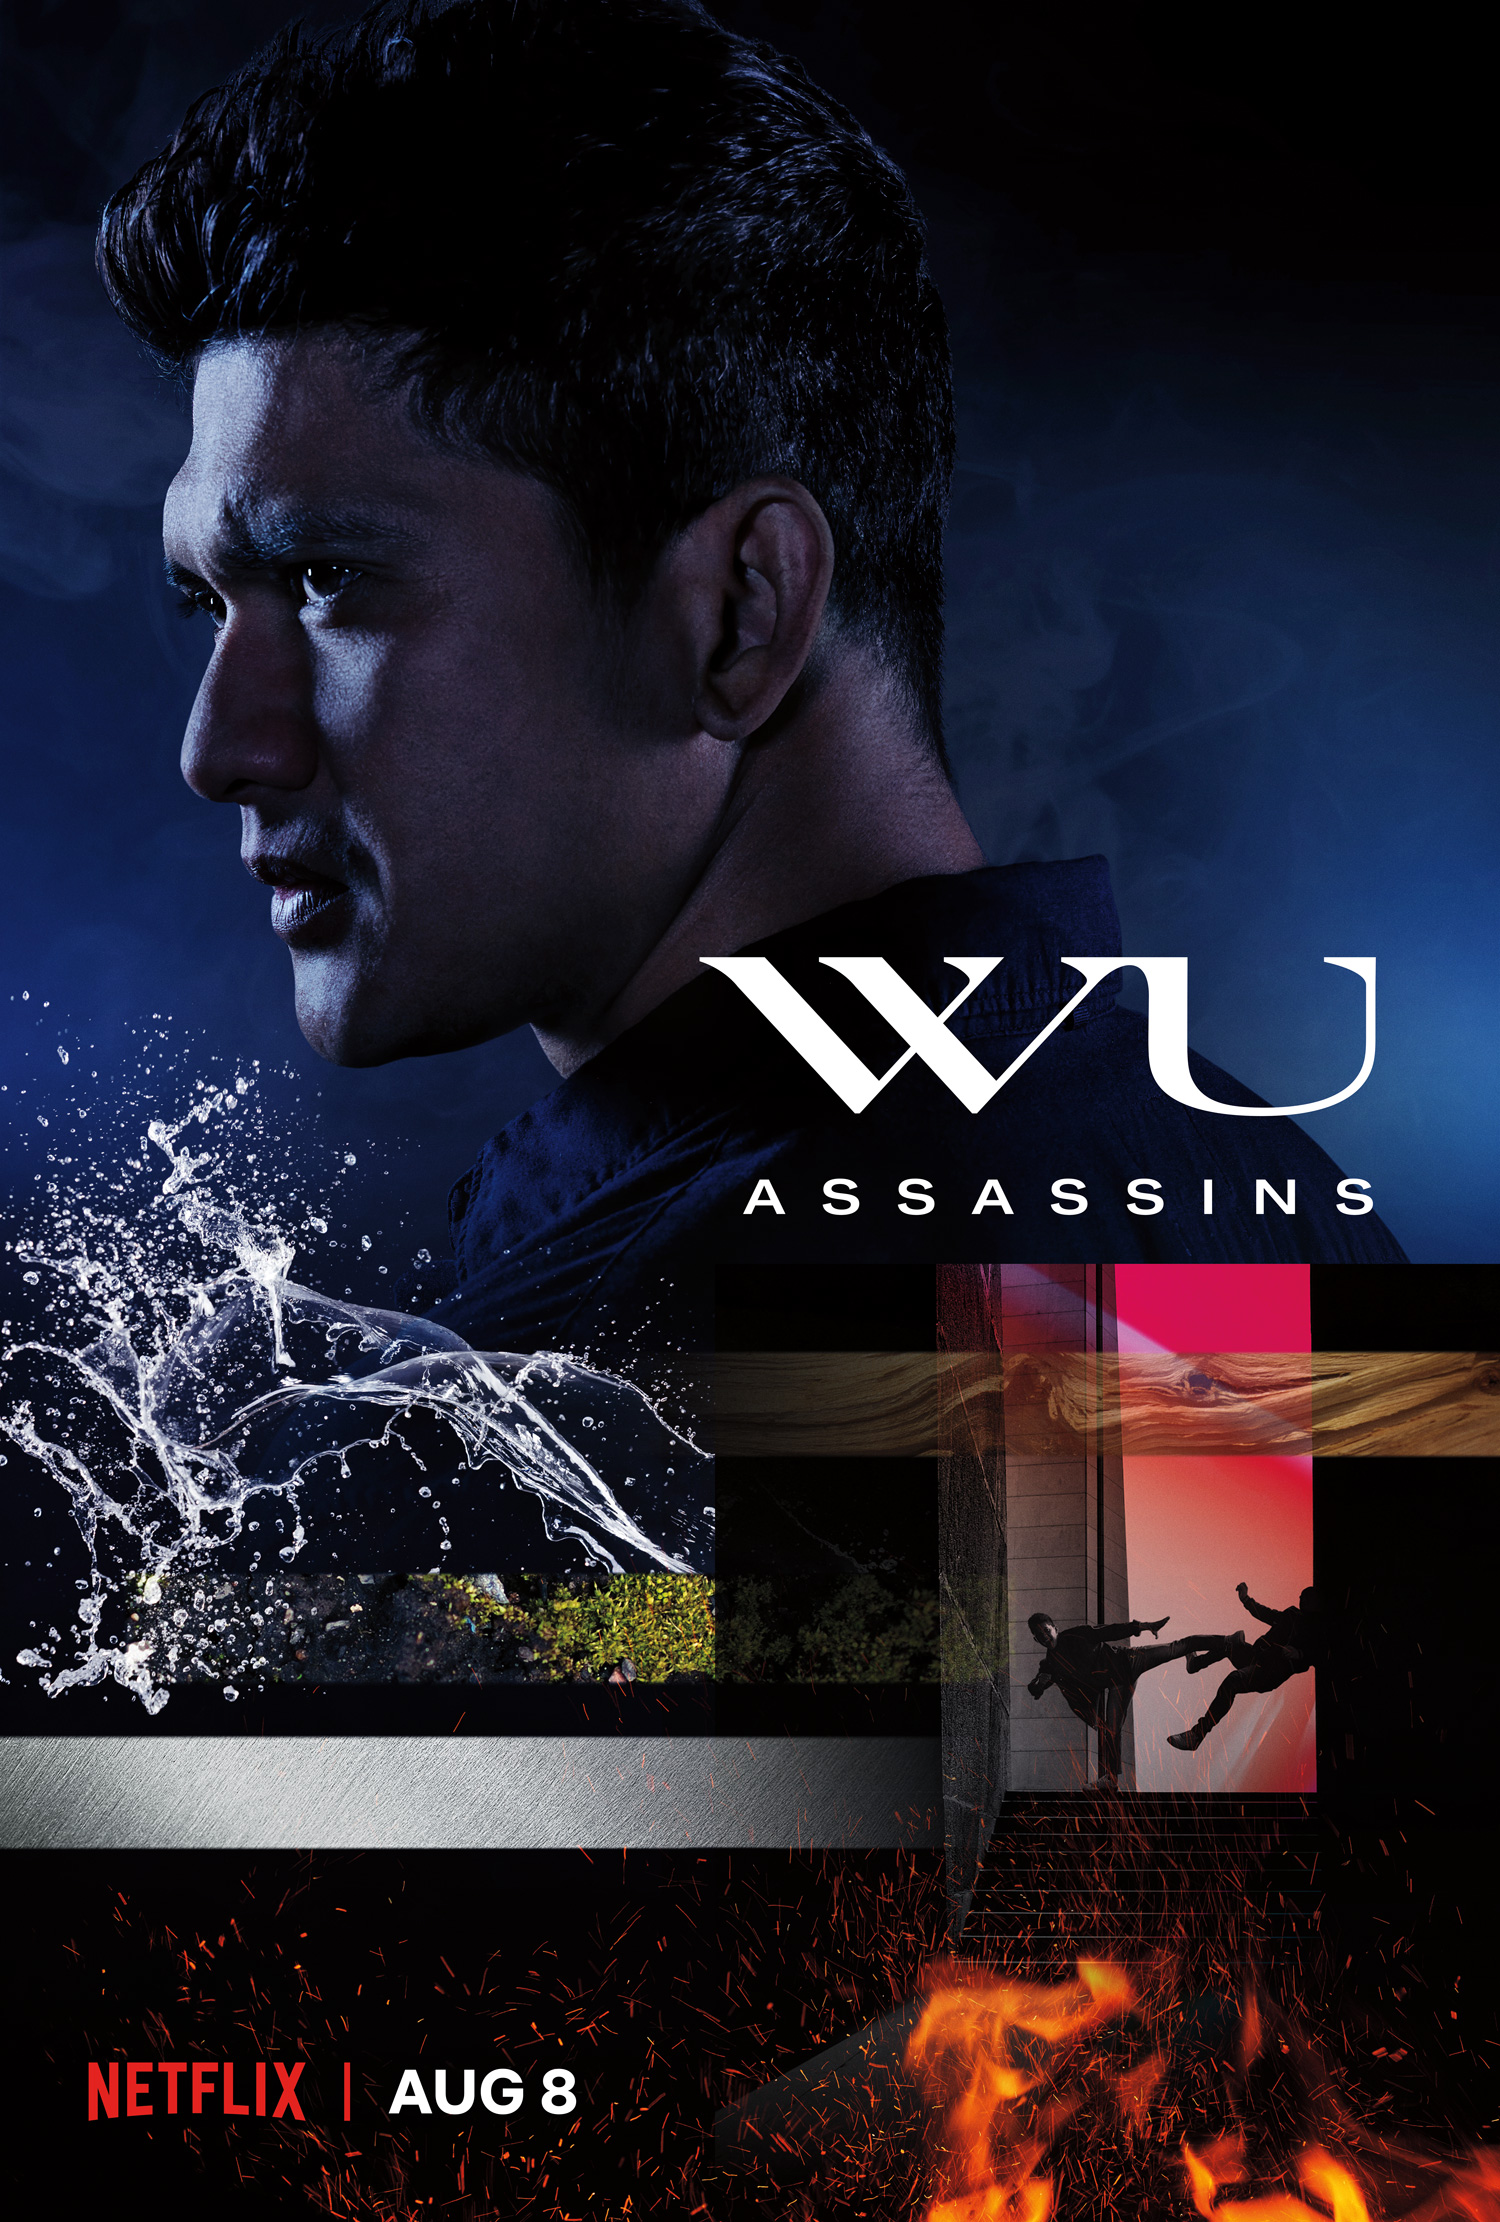 Wu žudikai (1 Sezonas) / Wu Assassins Season 1